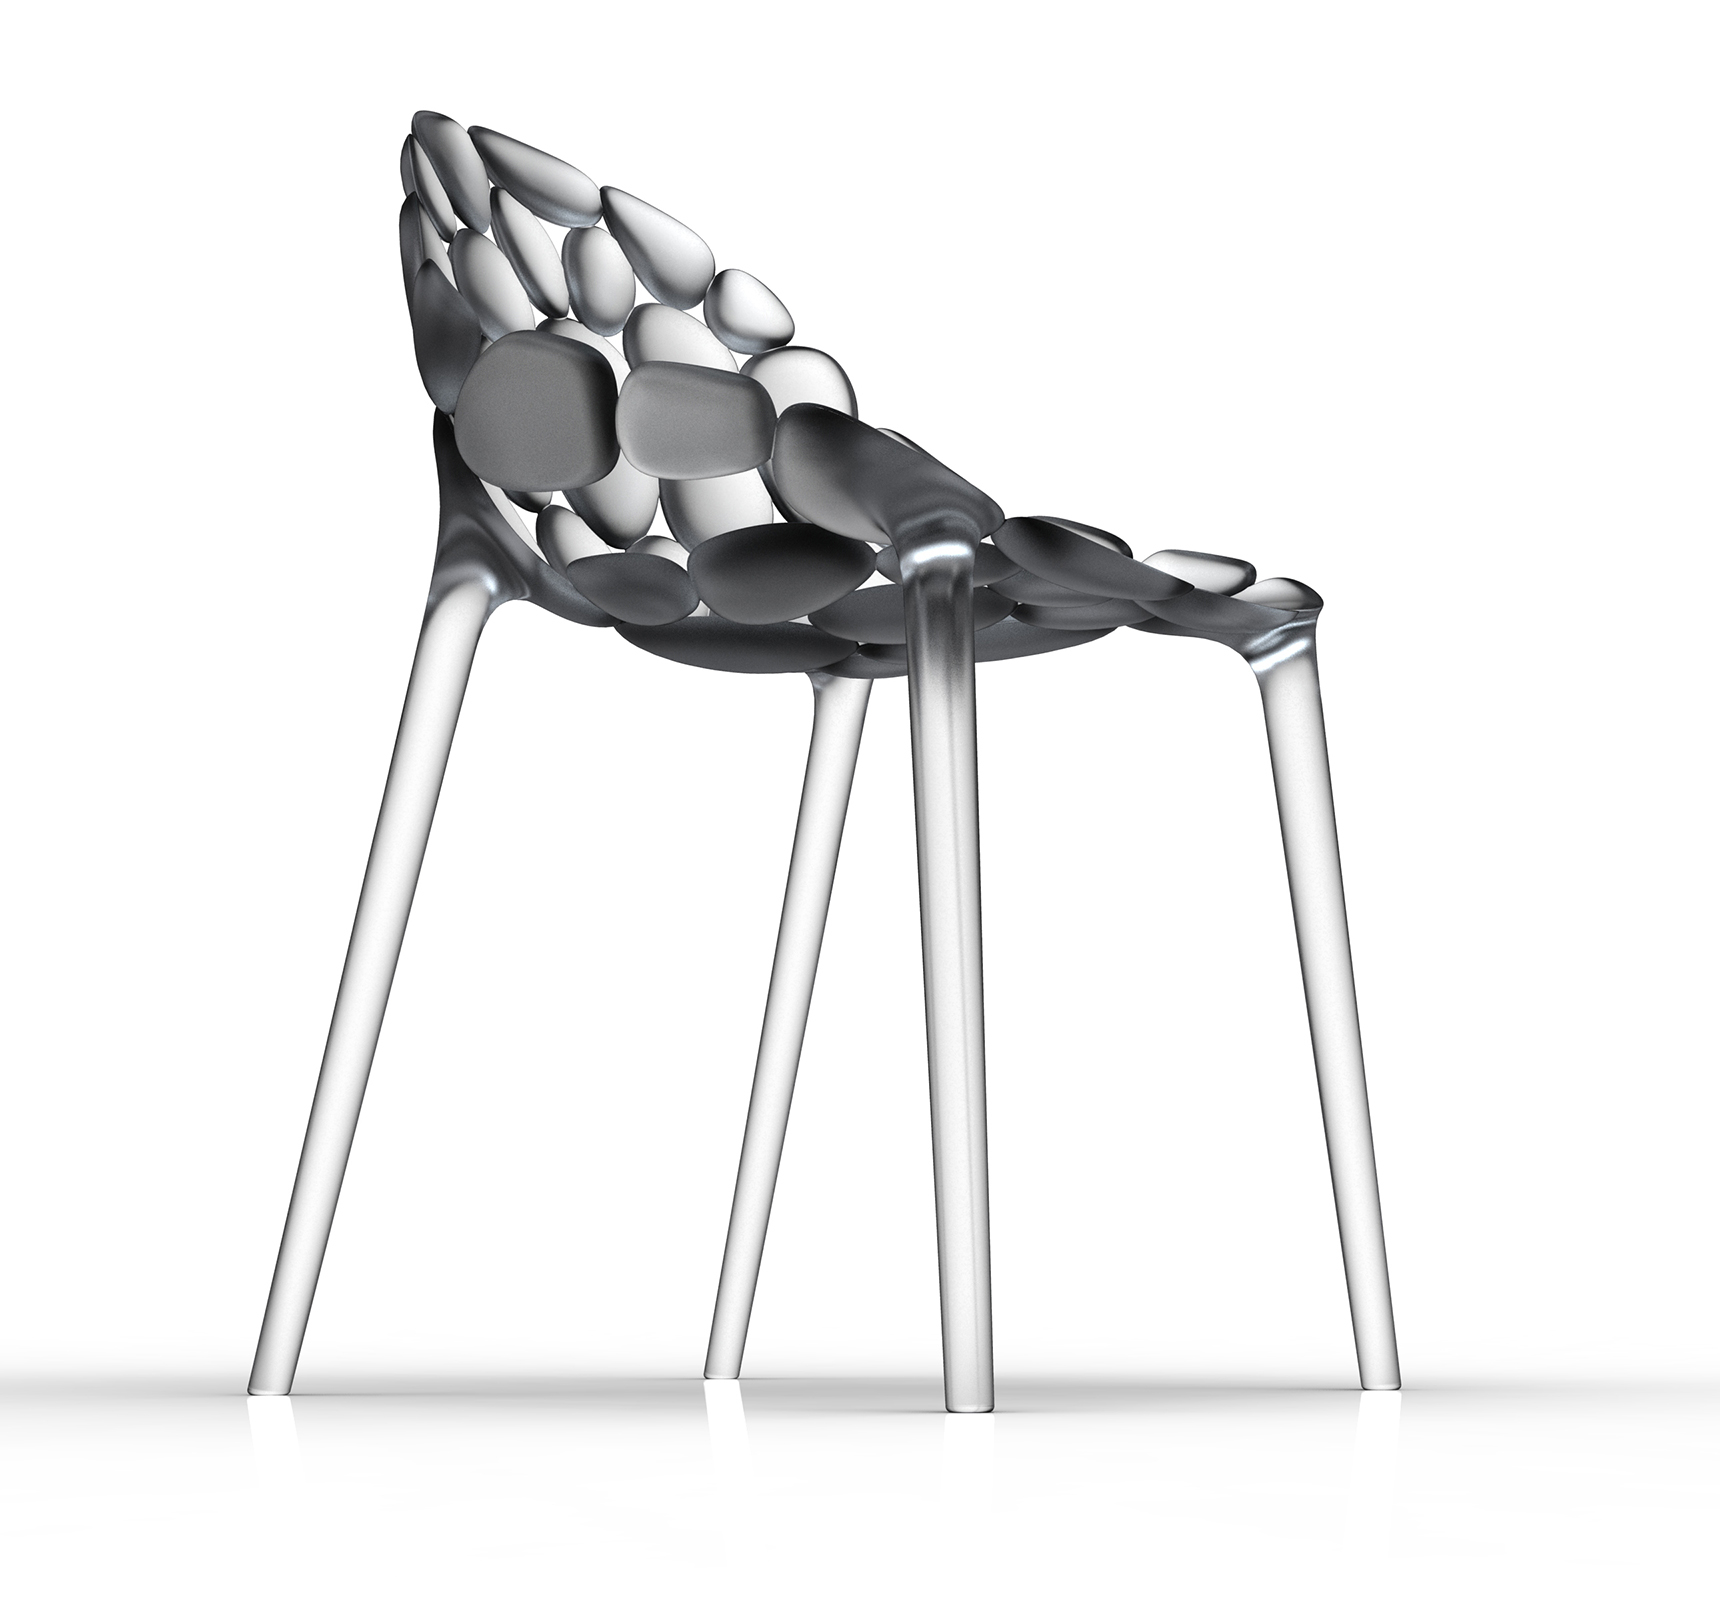 Claud-io chair by eugeni Quitllet with Kartell 1